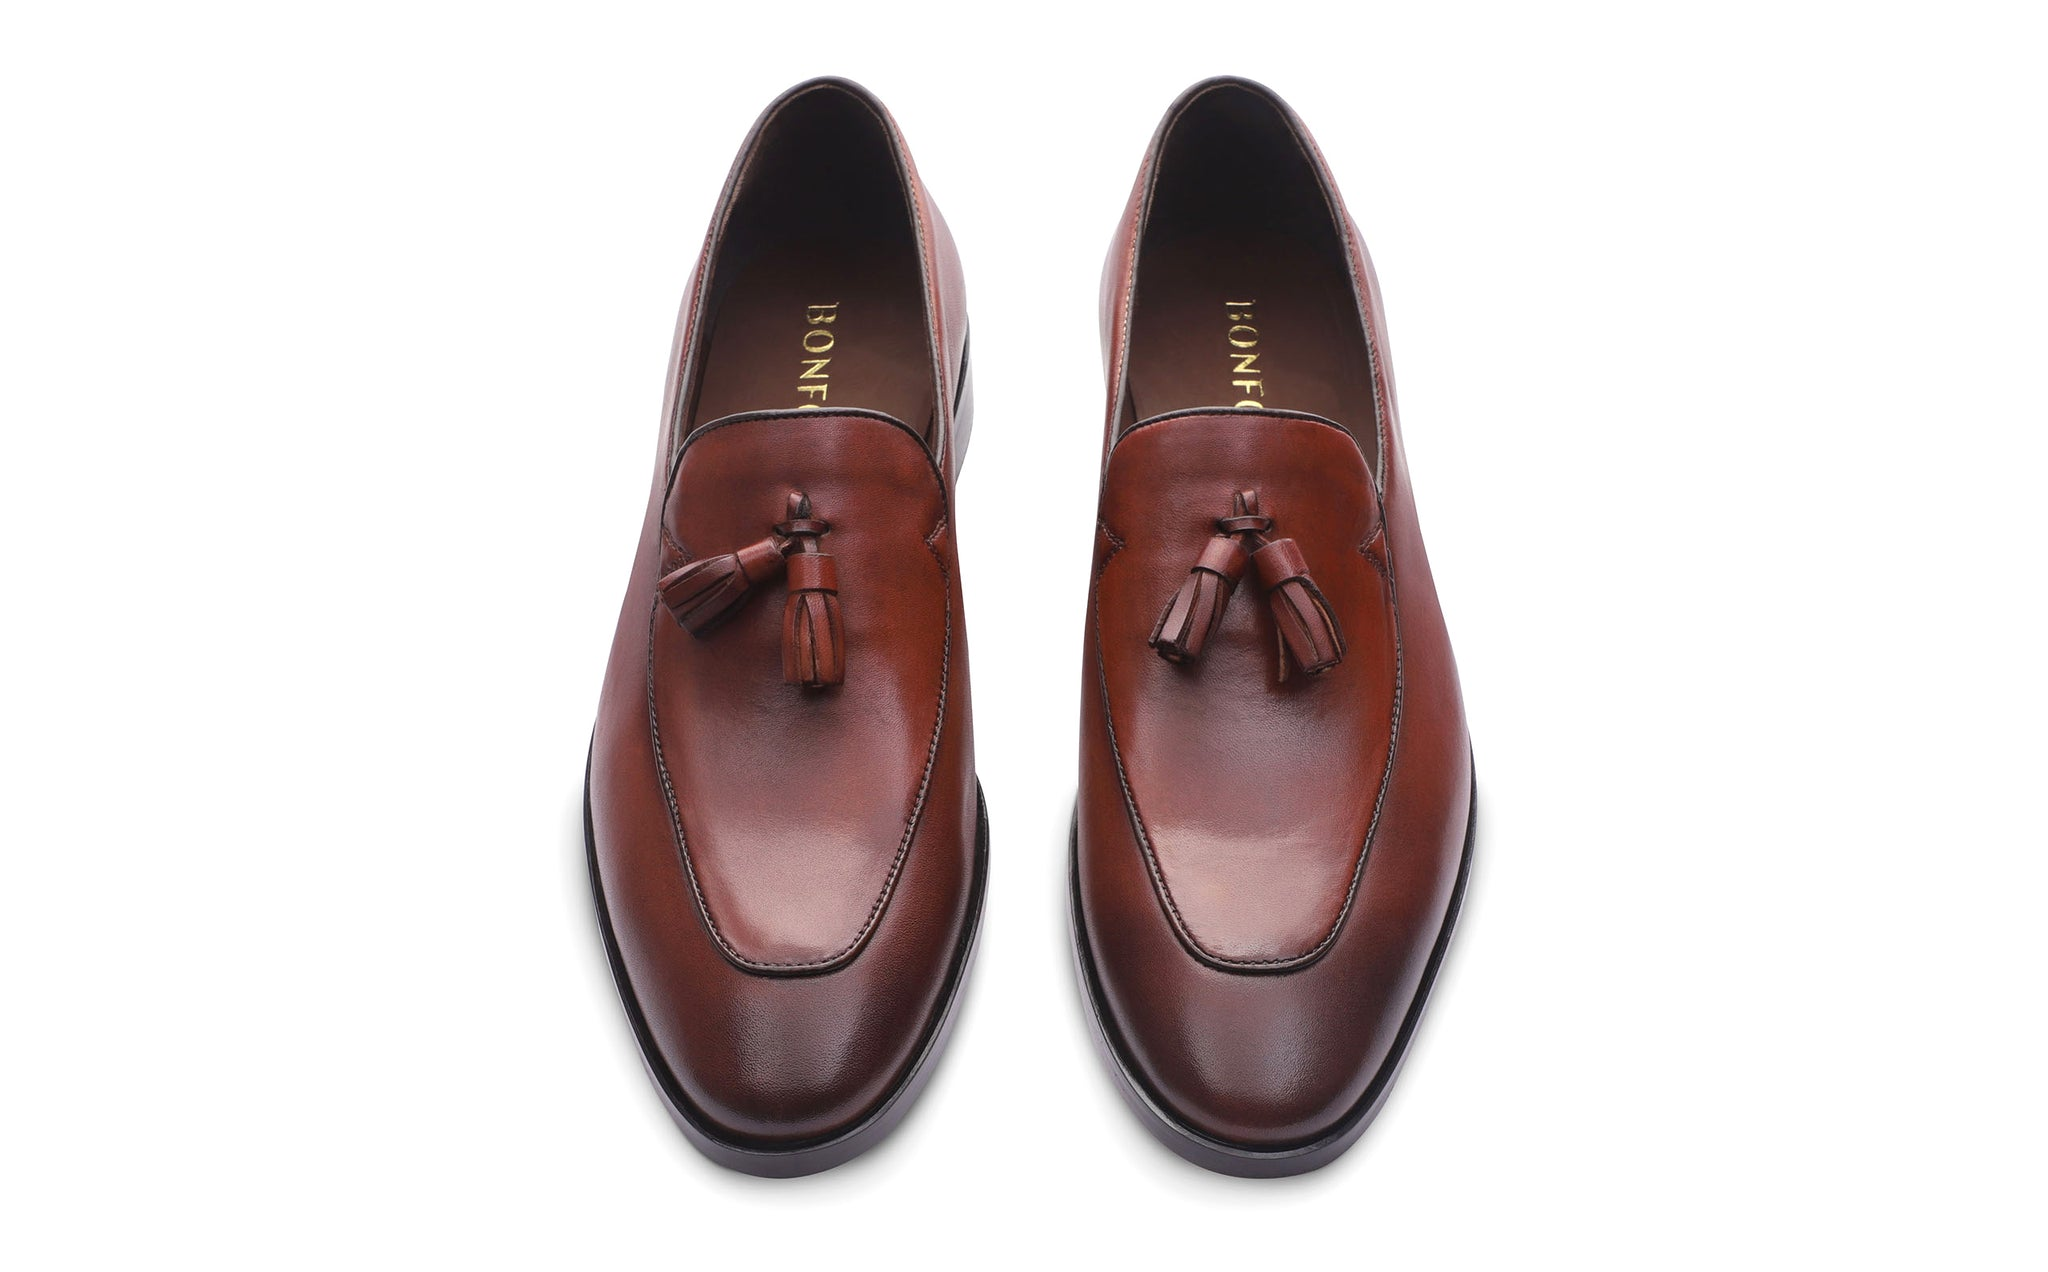 light tan leather loafer shoes for men